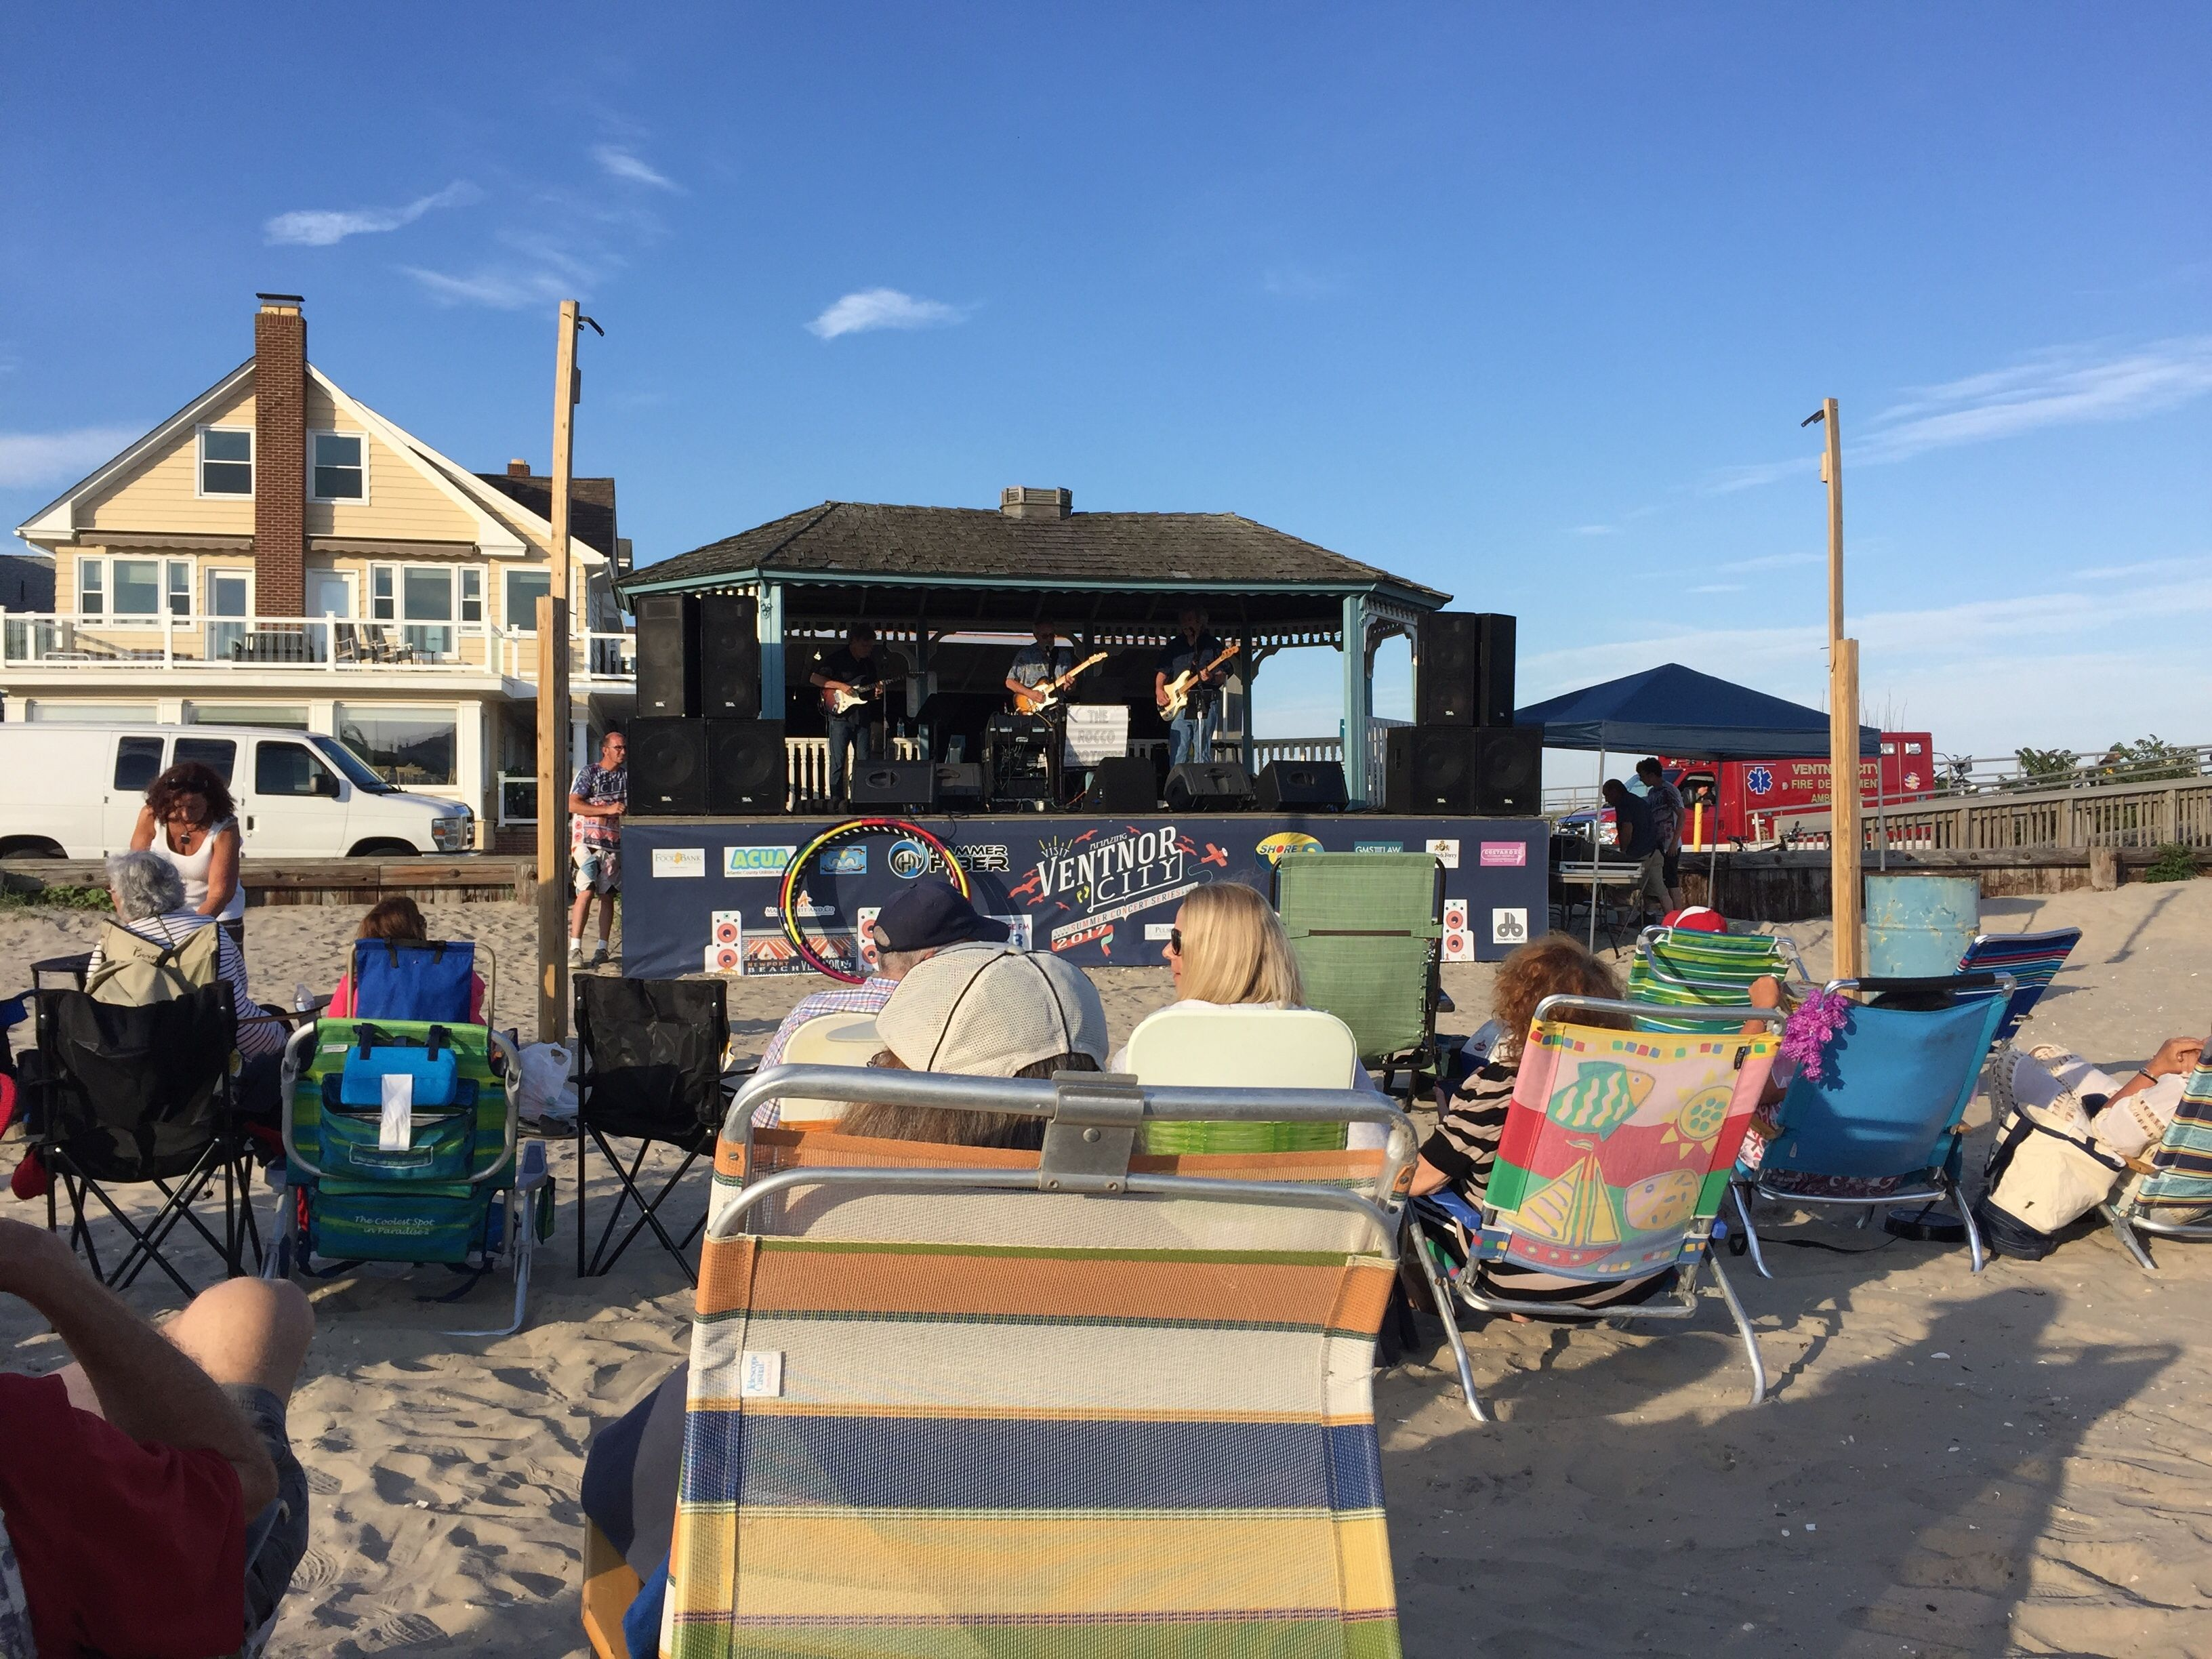 meet atlantic beach singles The shallow man writes about the seven best places to meet singles in amsterdam based on differing criteria and tastes there's something here for everyone.